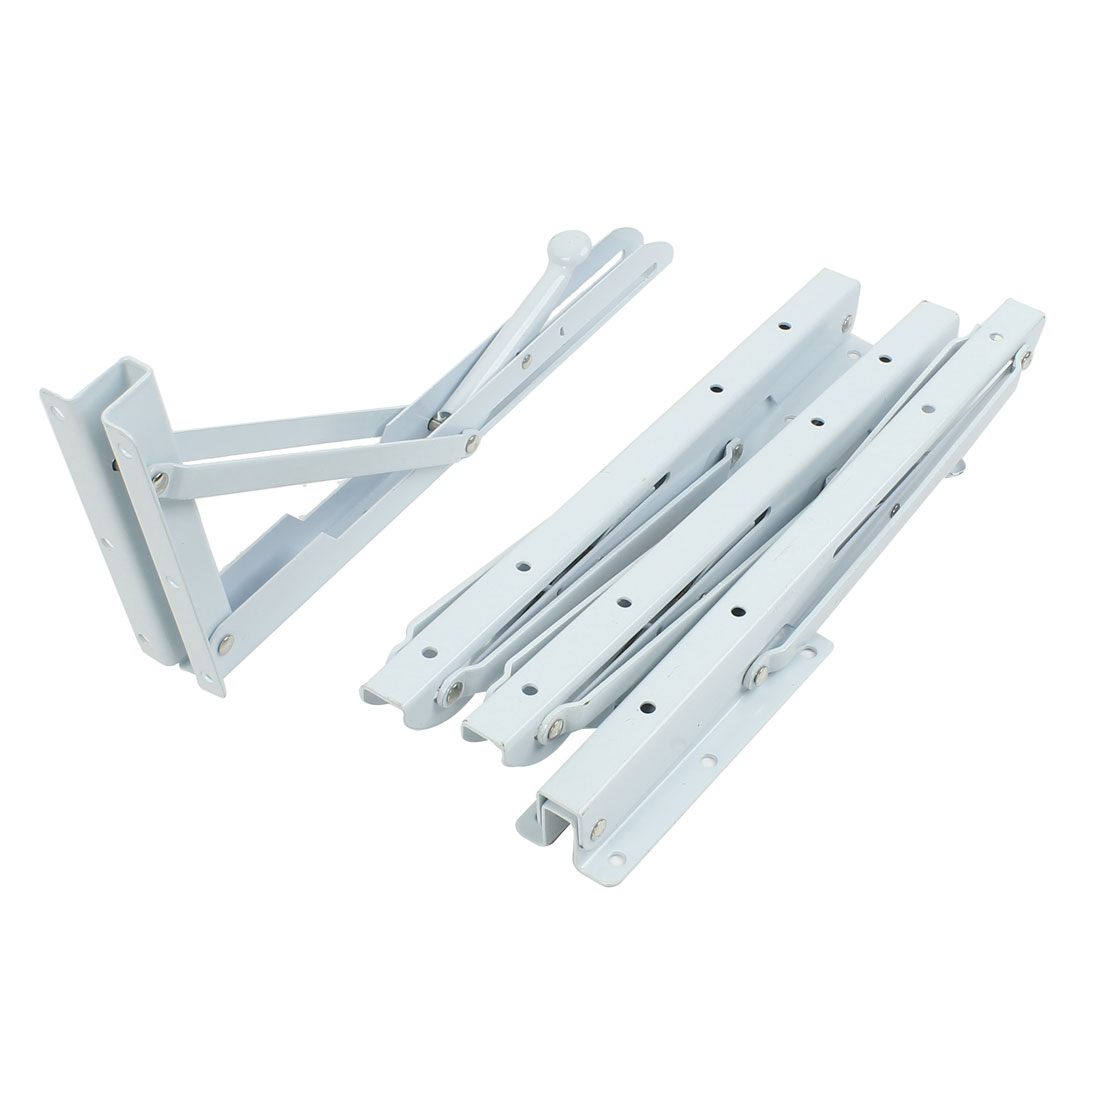 "4pcs Wall Mount Right Angle Store Shop Projector Foldable Shelf Bracket 12"" x 5"""